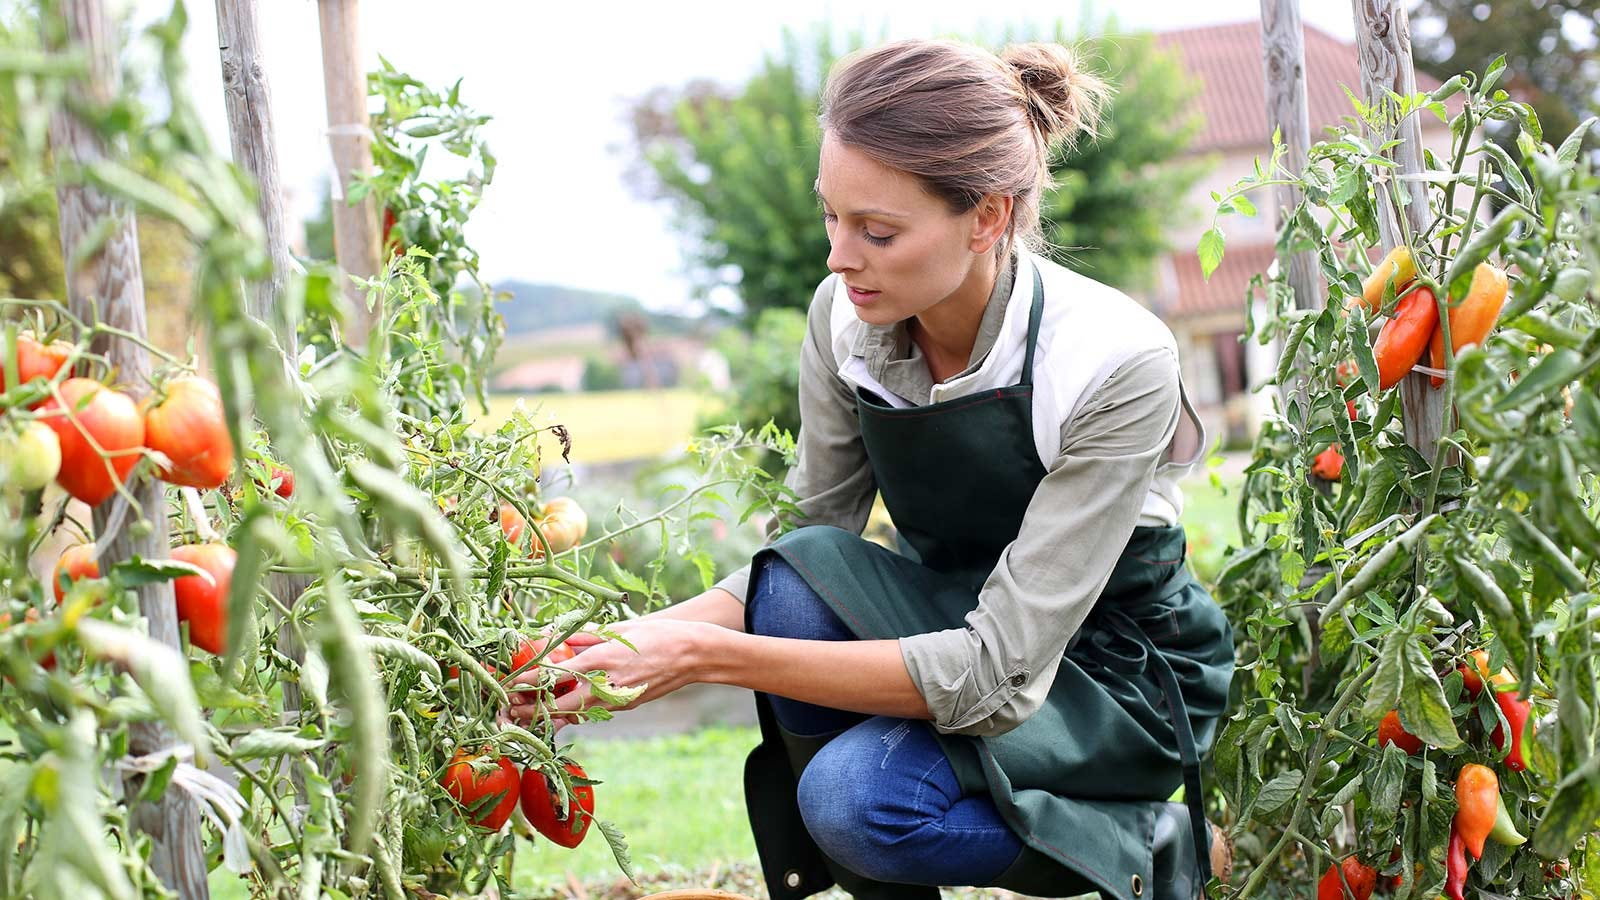 A woman picking vegetables off a vine in her garden.